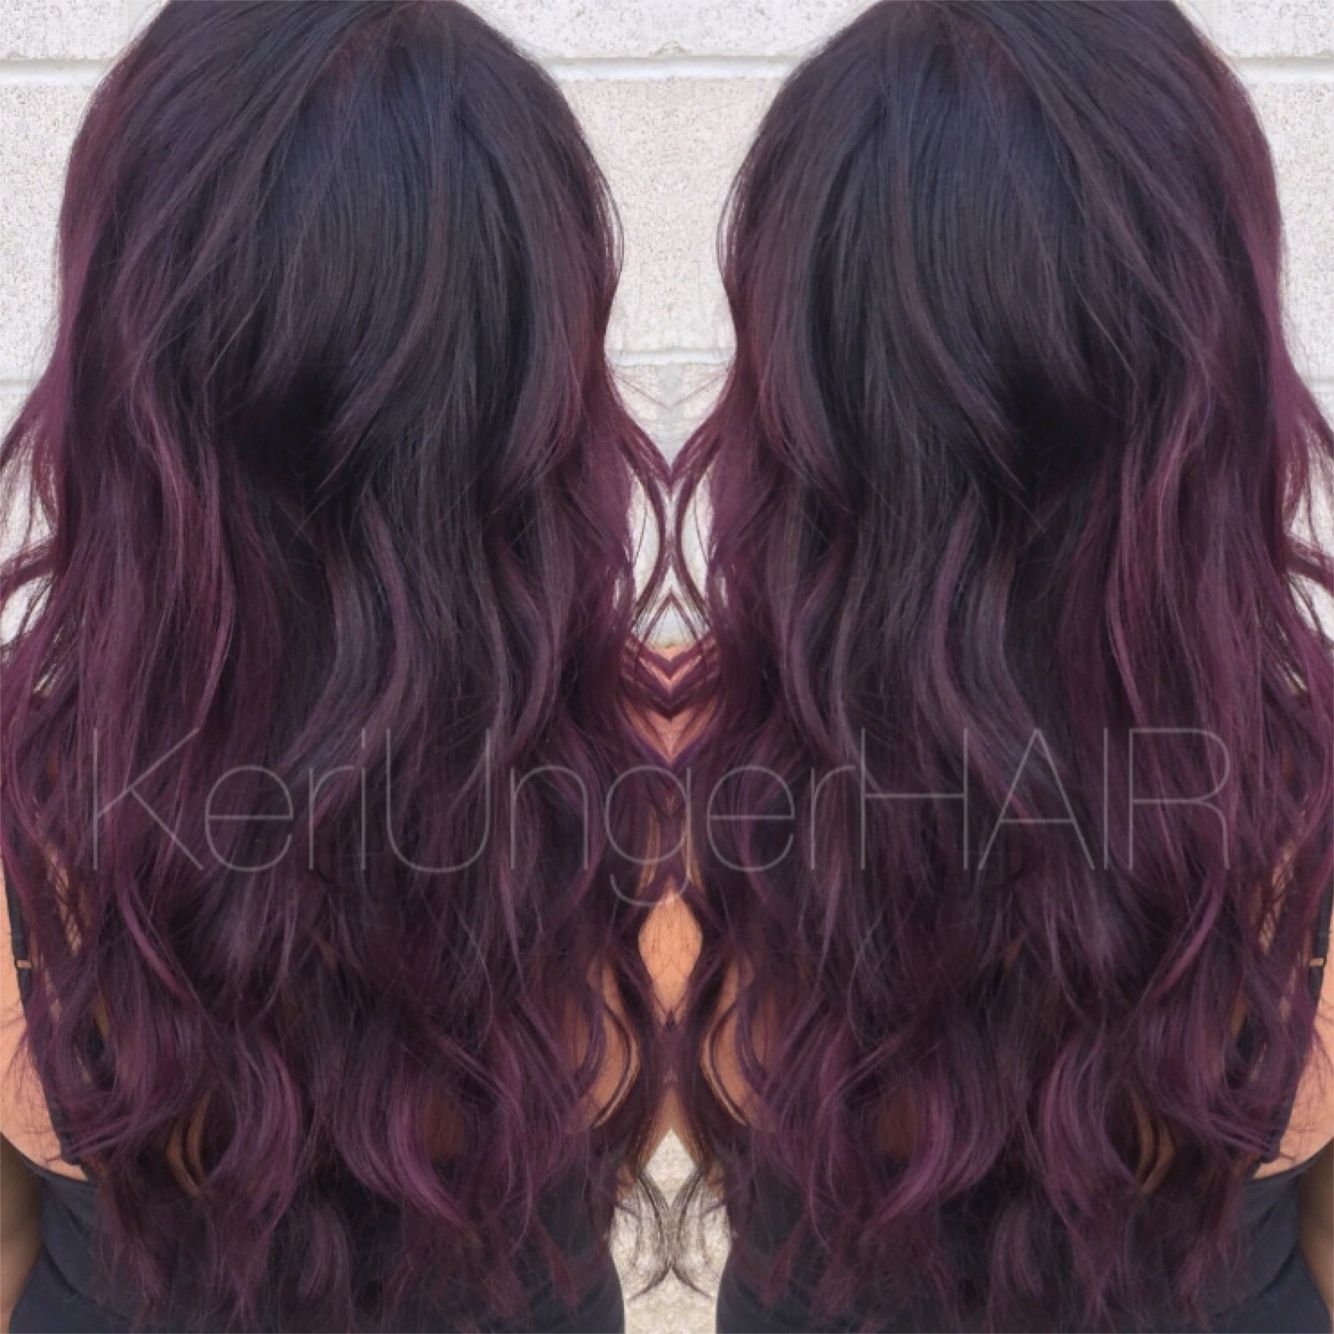 Perfectly Plum Violet Hair Wella Keriungerhair 1 440